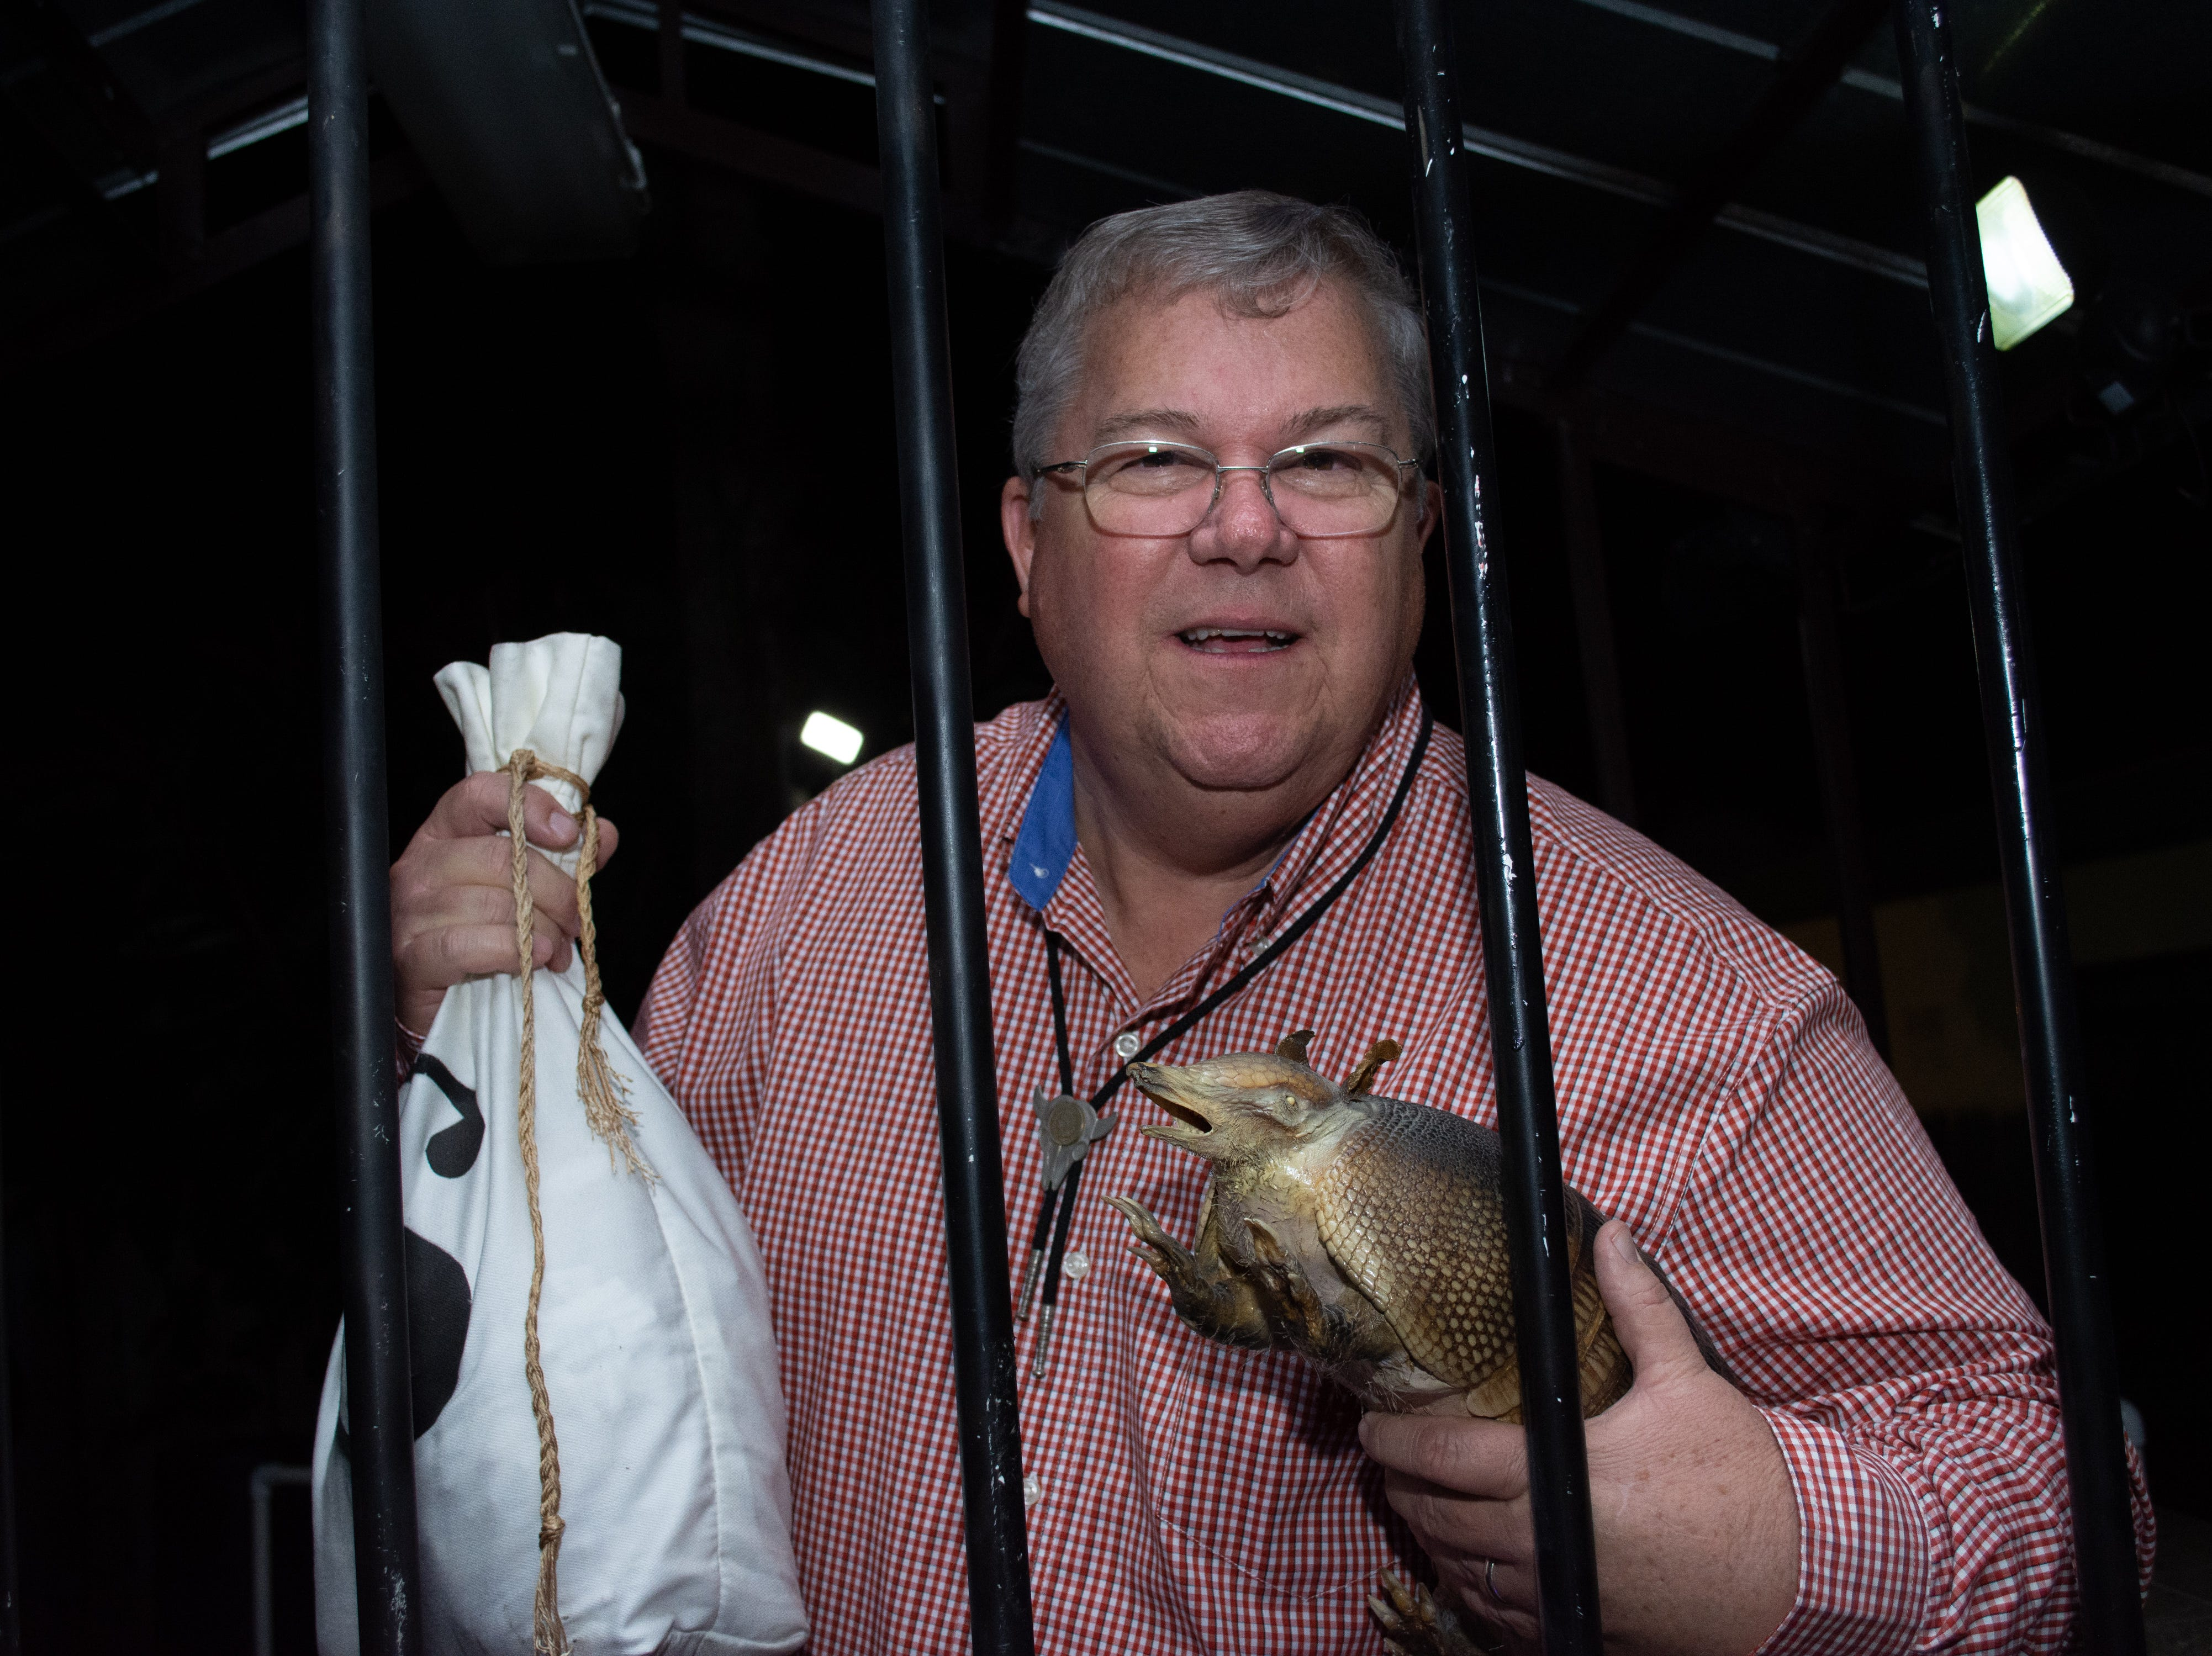 Pastor Tom from Temple Baptist one of the 'Celeberty' jail birds poses for a photo. Arron Lampkin/For FLORIDA TODAY